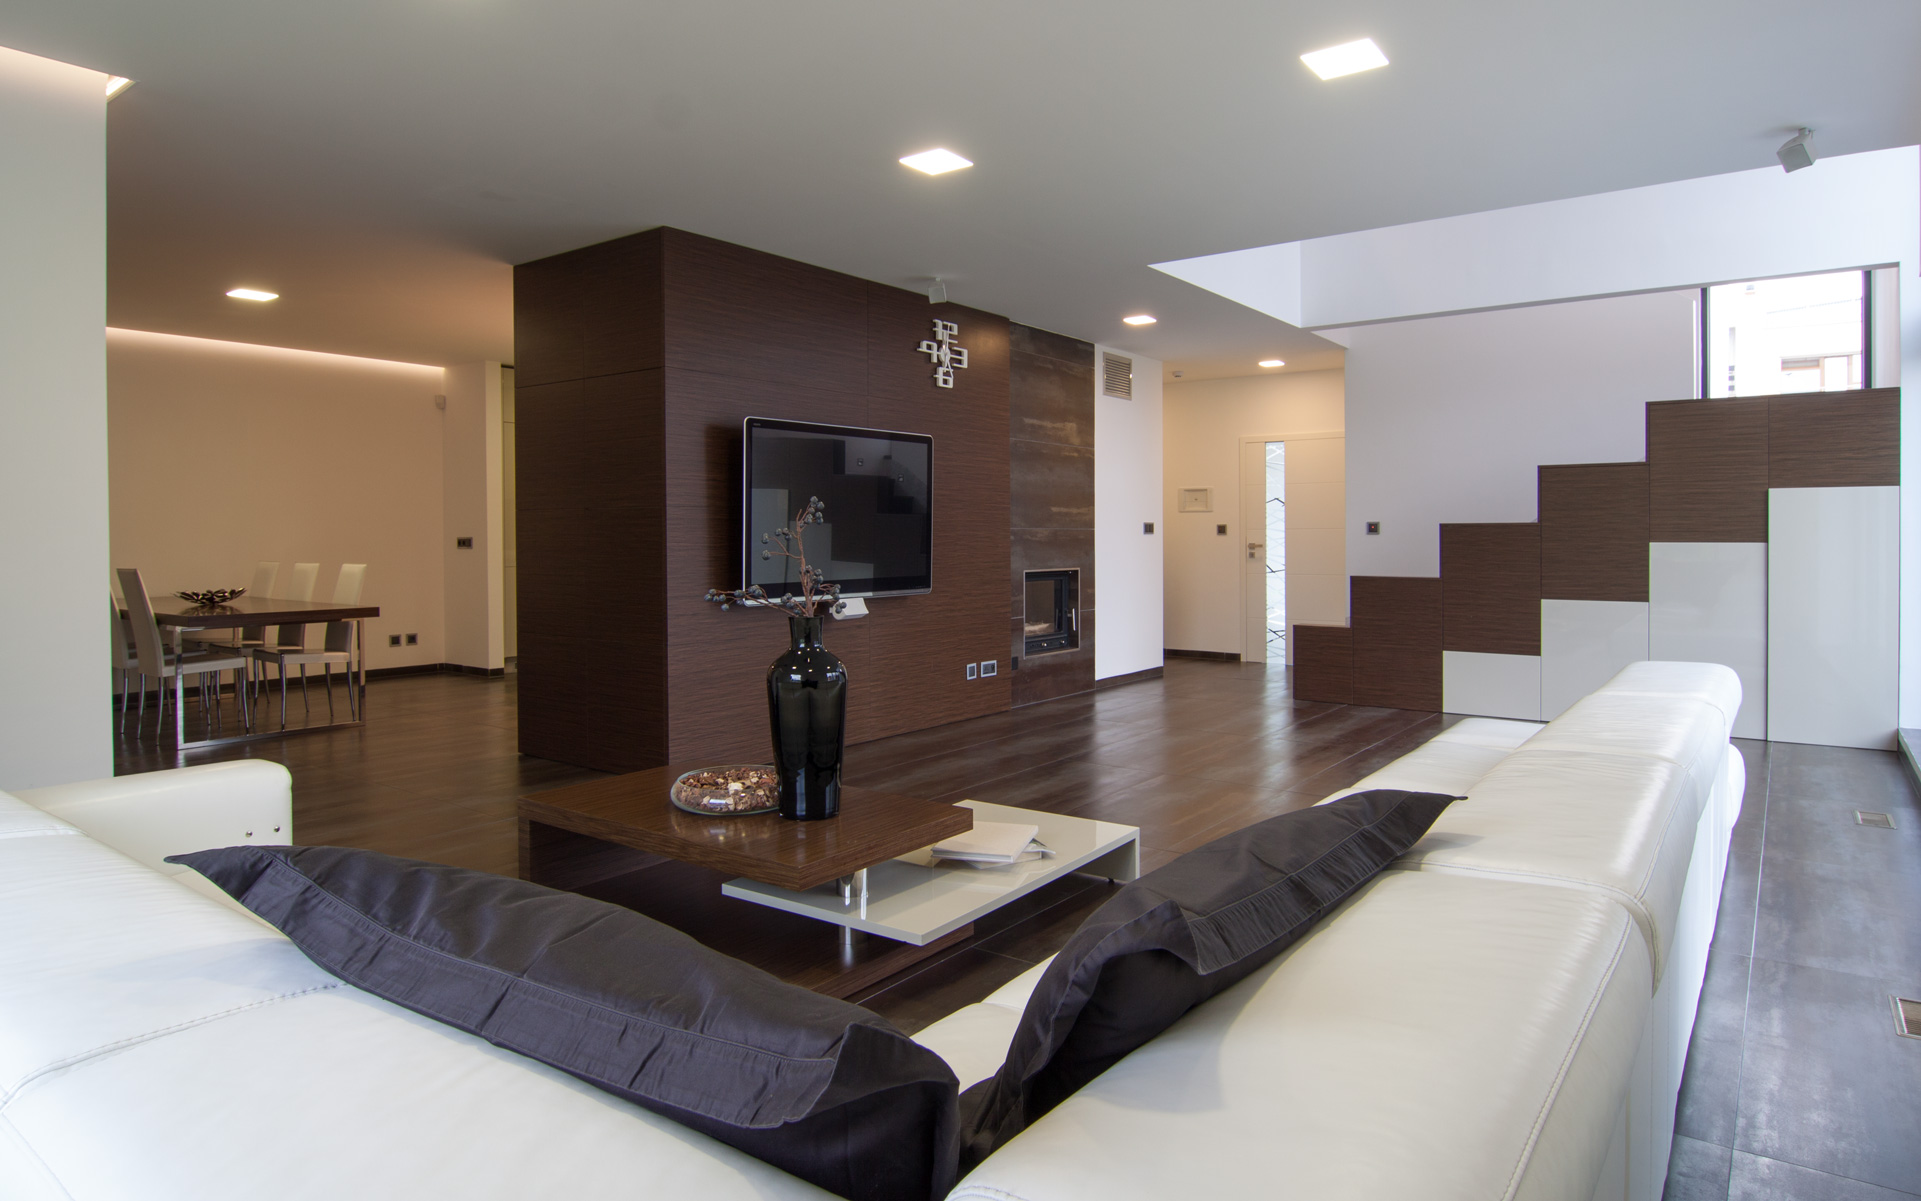 Modern family house with HANAK furniture, kitchen, bedroom etc.